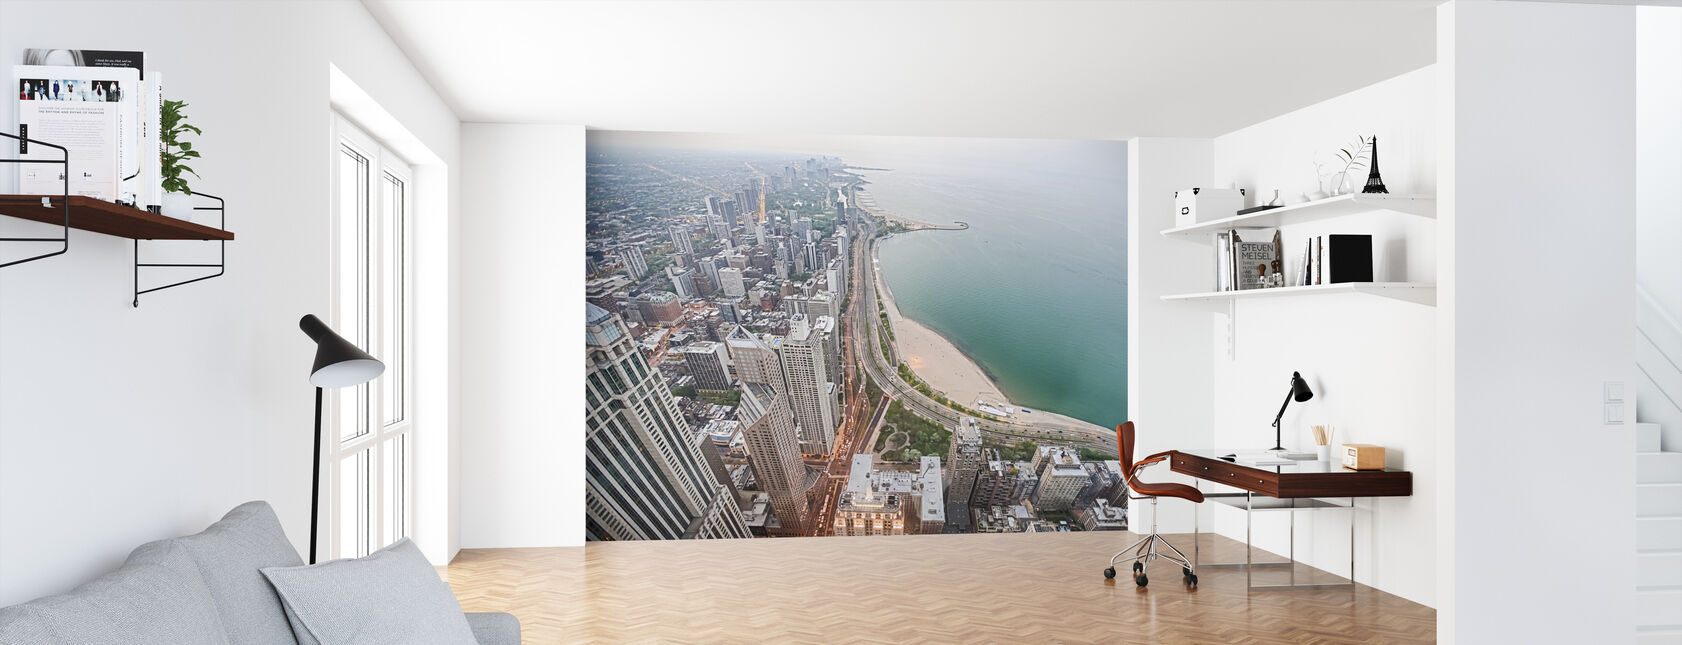 View from a Skyscraper in Chicago - Wallpaper - Office